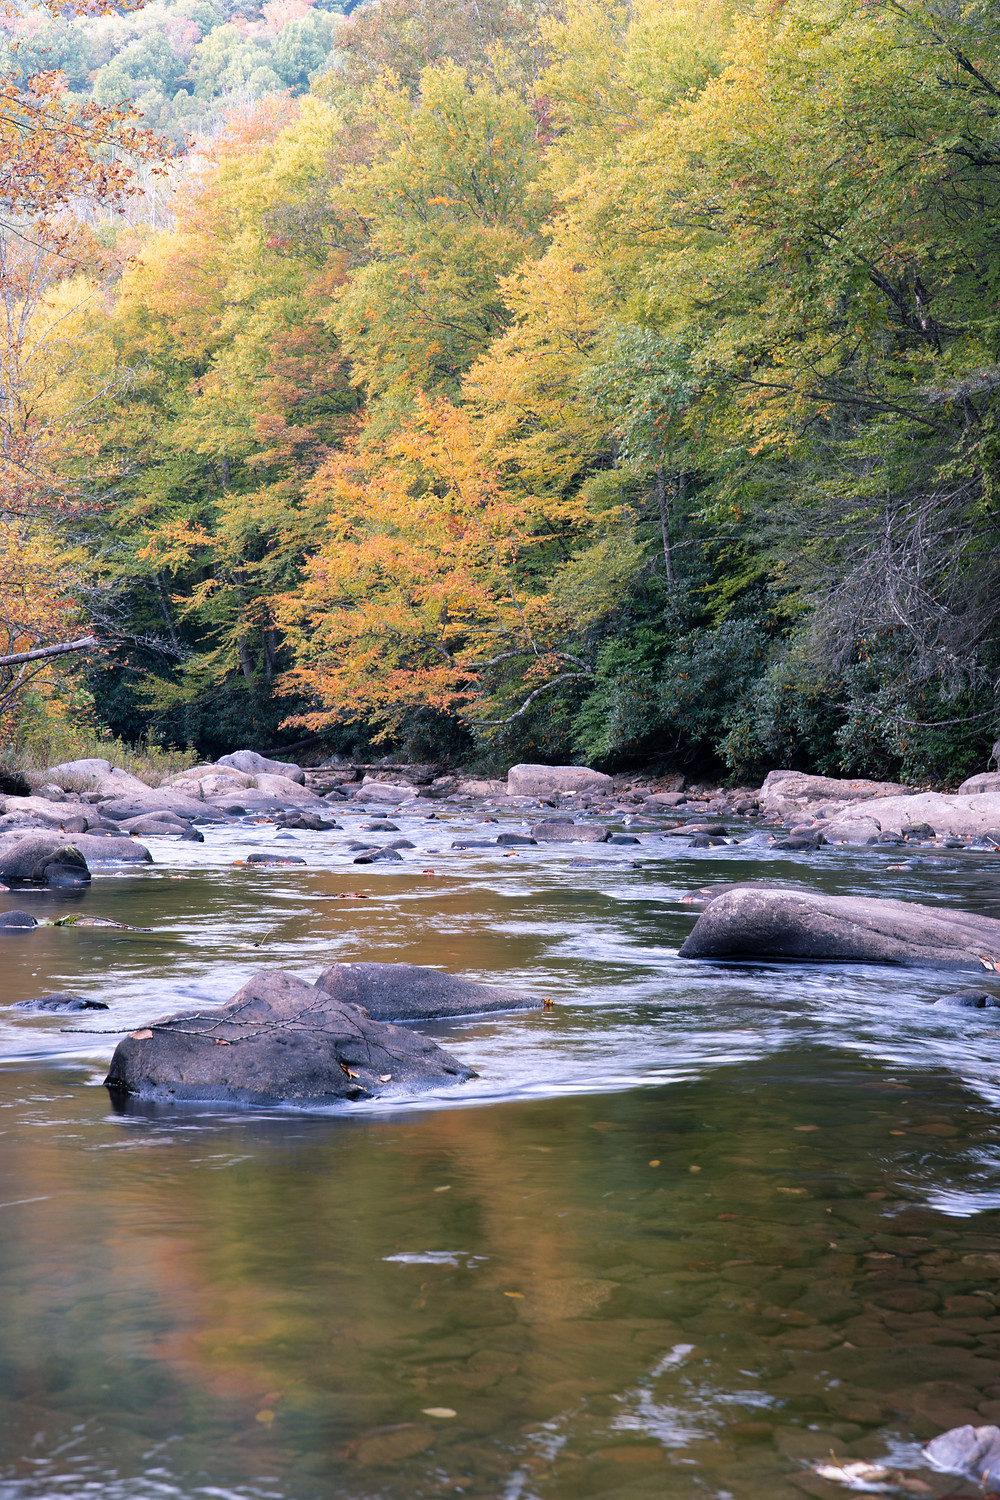 Fly fishing the Cranberry River Backcountry